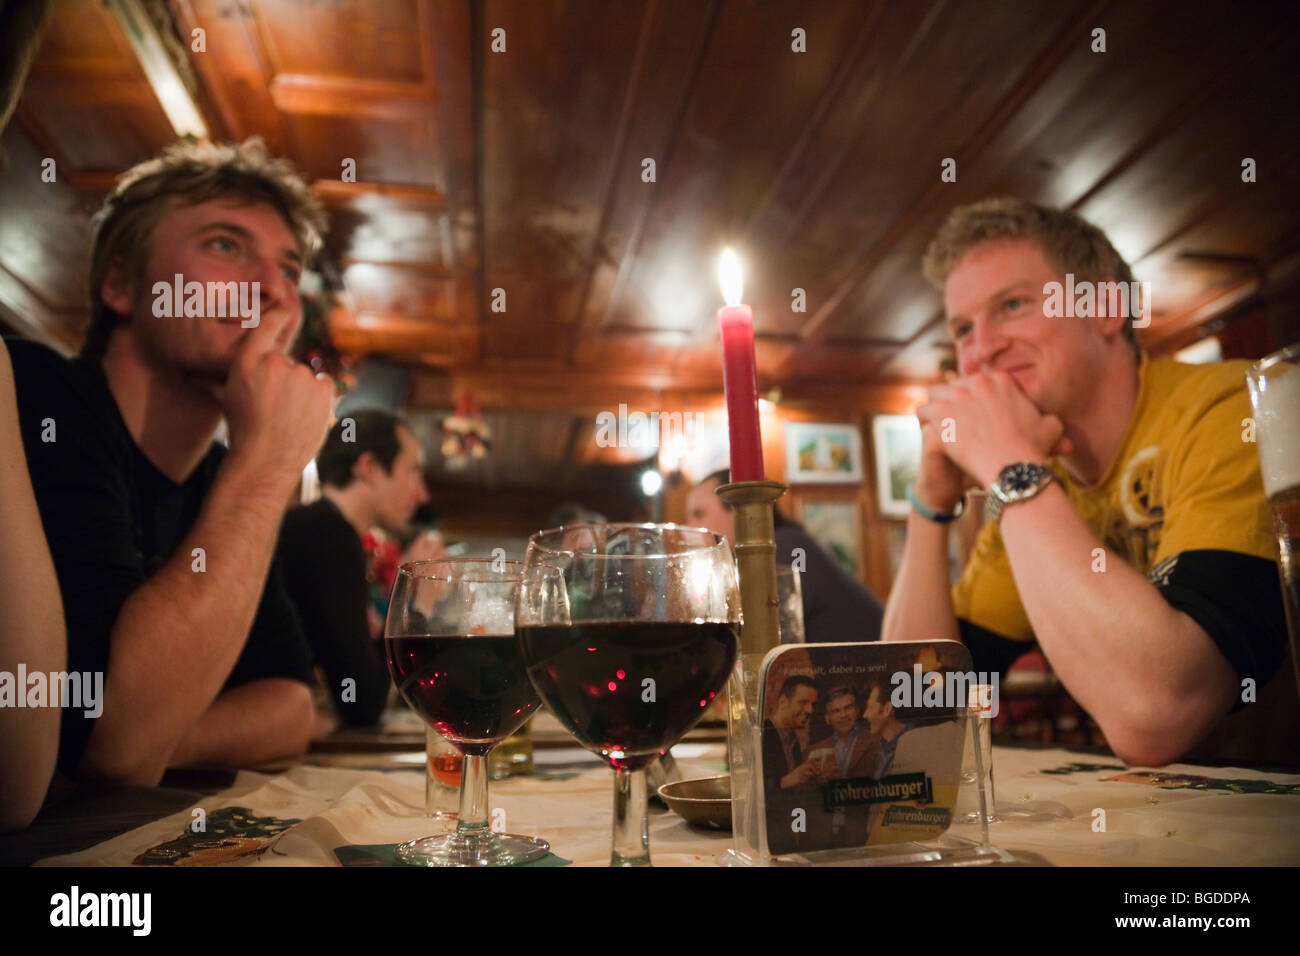 Young people friends sat drinking red wine around a table in 'The Underground' apres ski bar in St Anton, - Stock Image